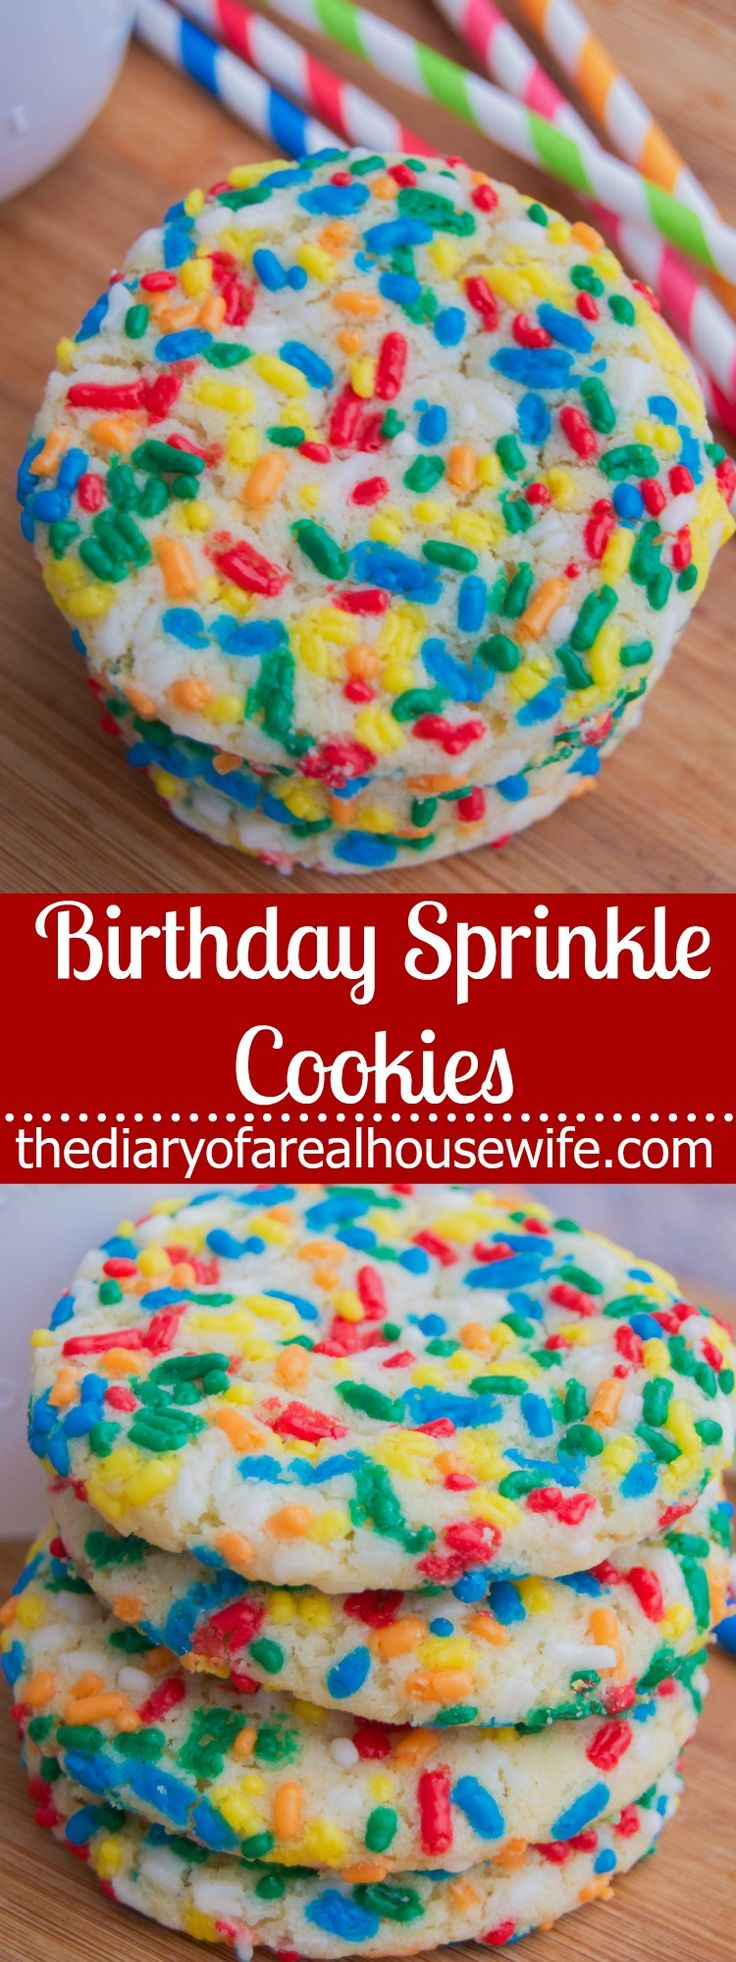 These Birthday Sprinkle Cookie are the perfect addition to any celebration with their colorful sprinkles and ease of preparation you can't go wrong.